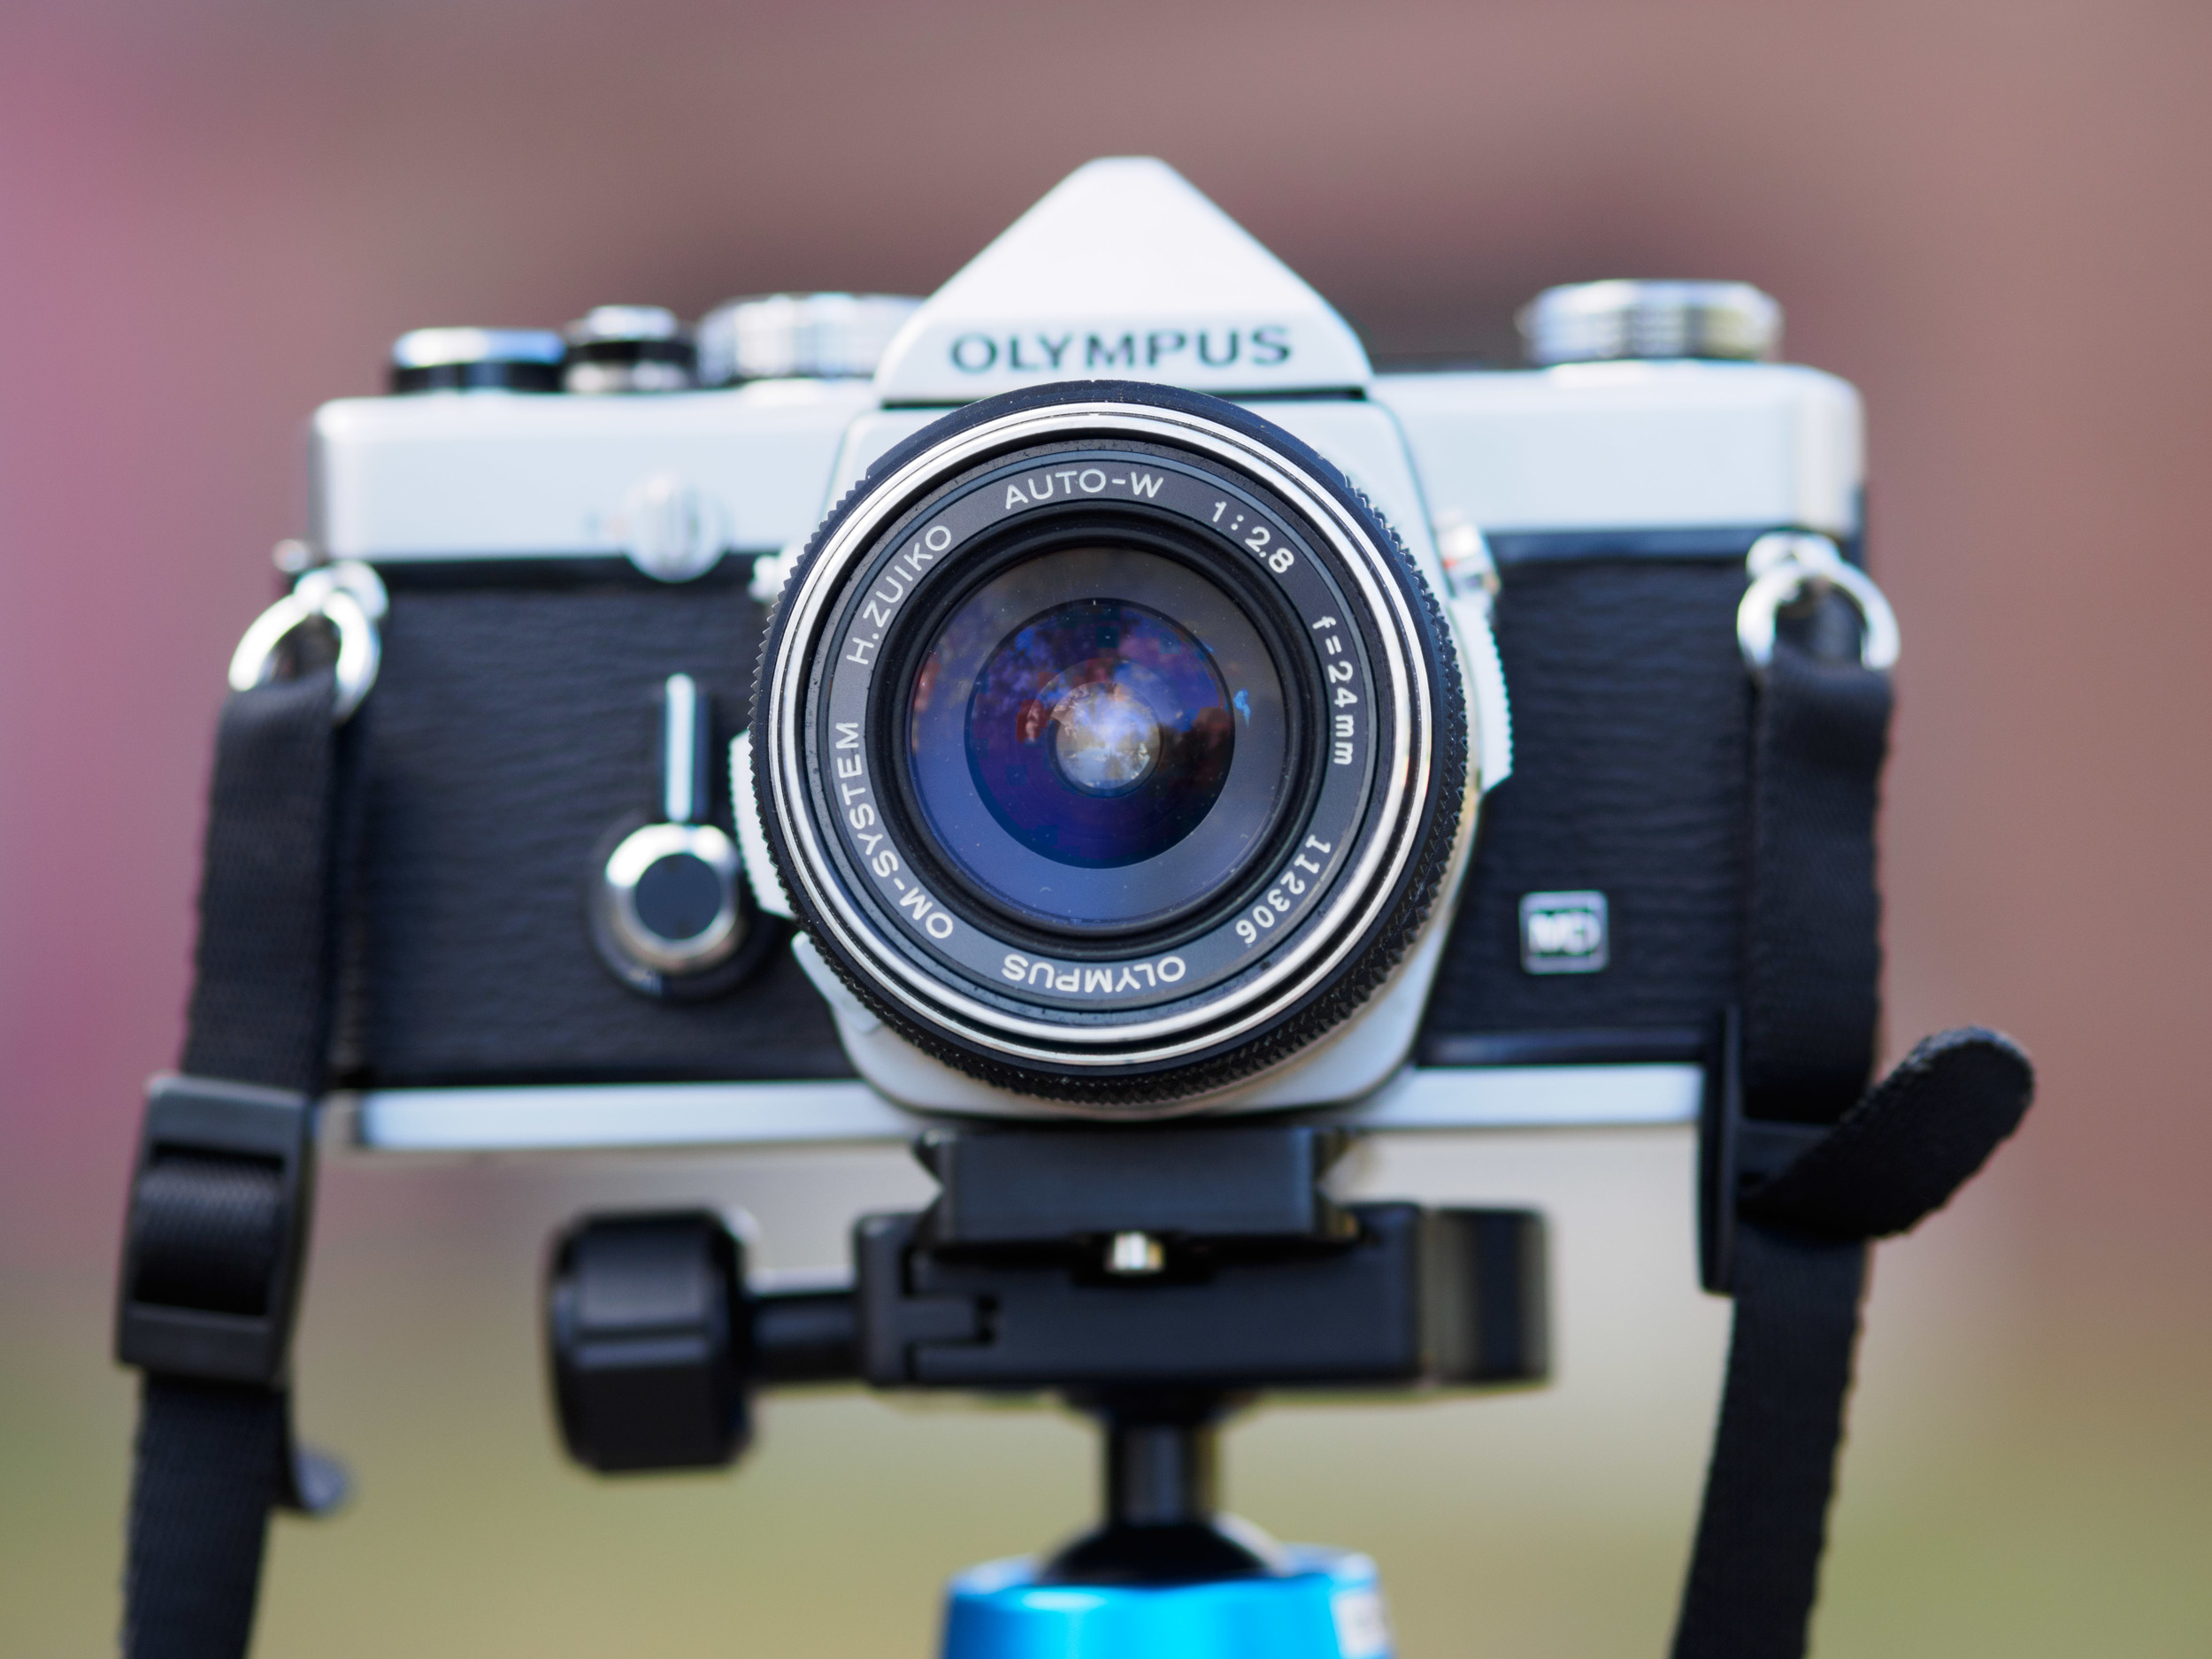 Stand back, compose, and be wowed. I am always smiling when this lens is on my camera.